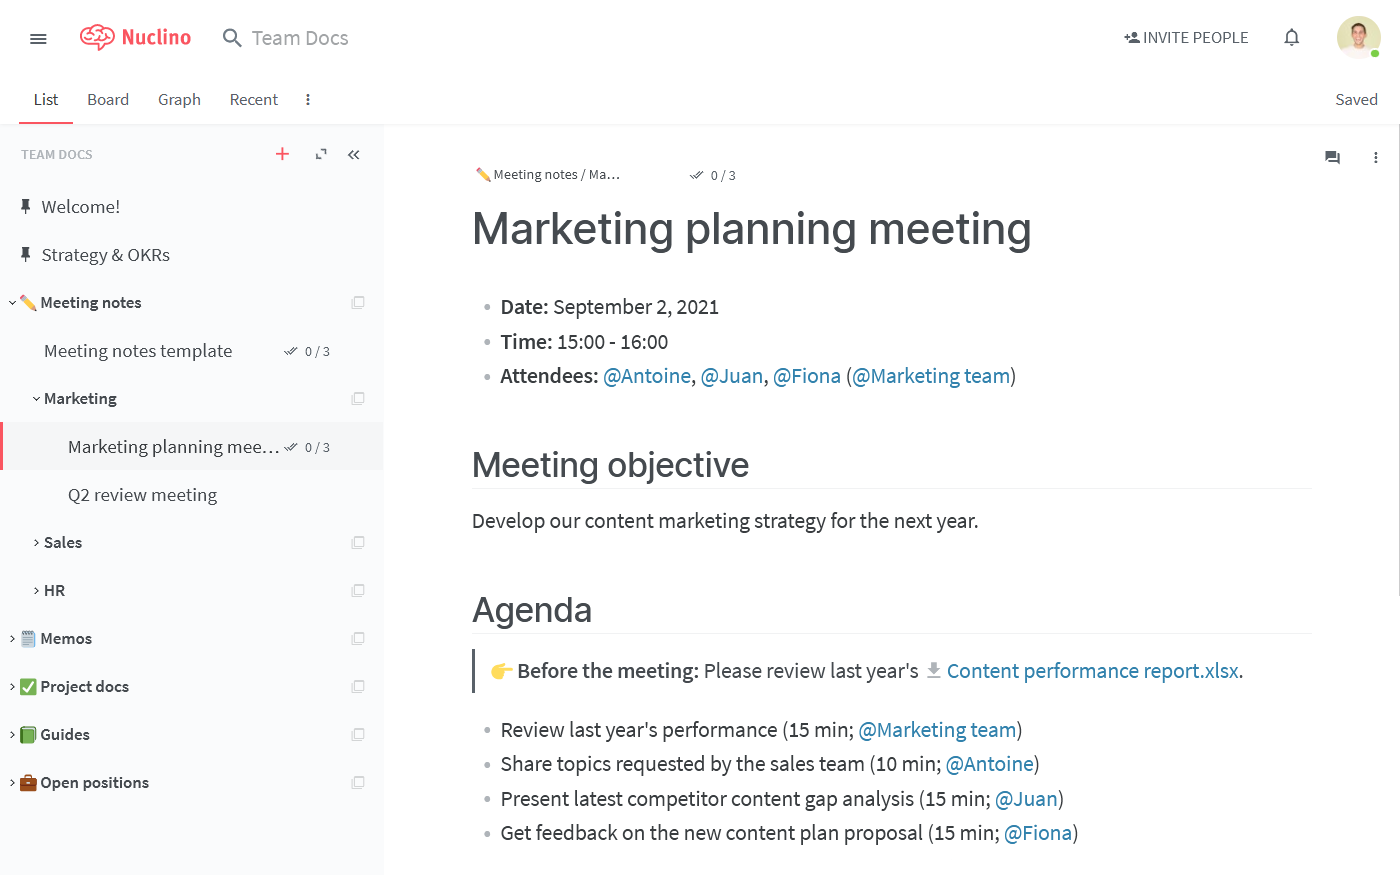 Meeting minutes example in Nuclino